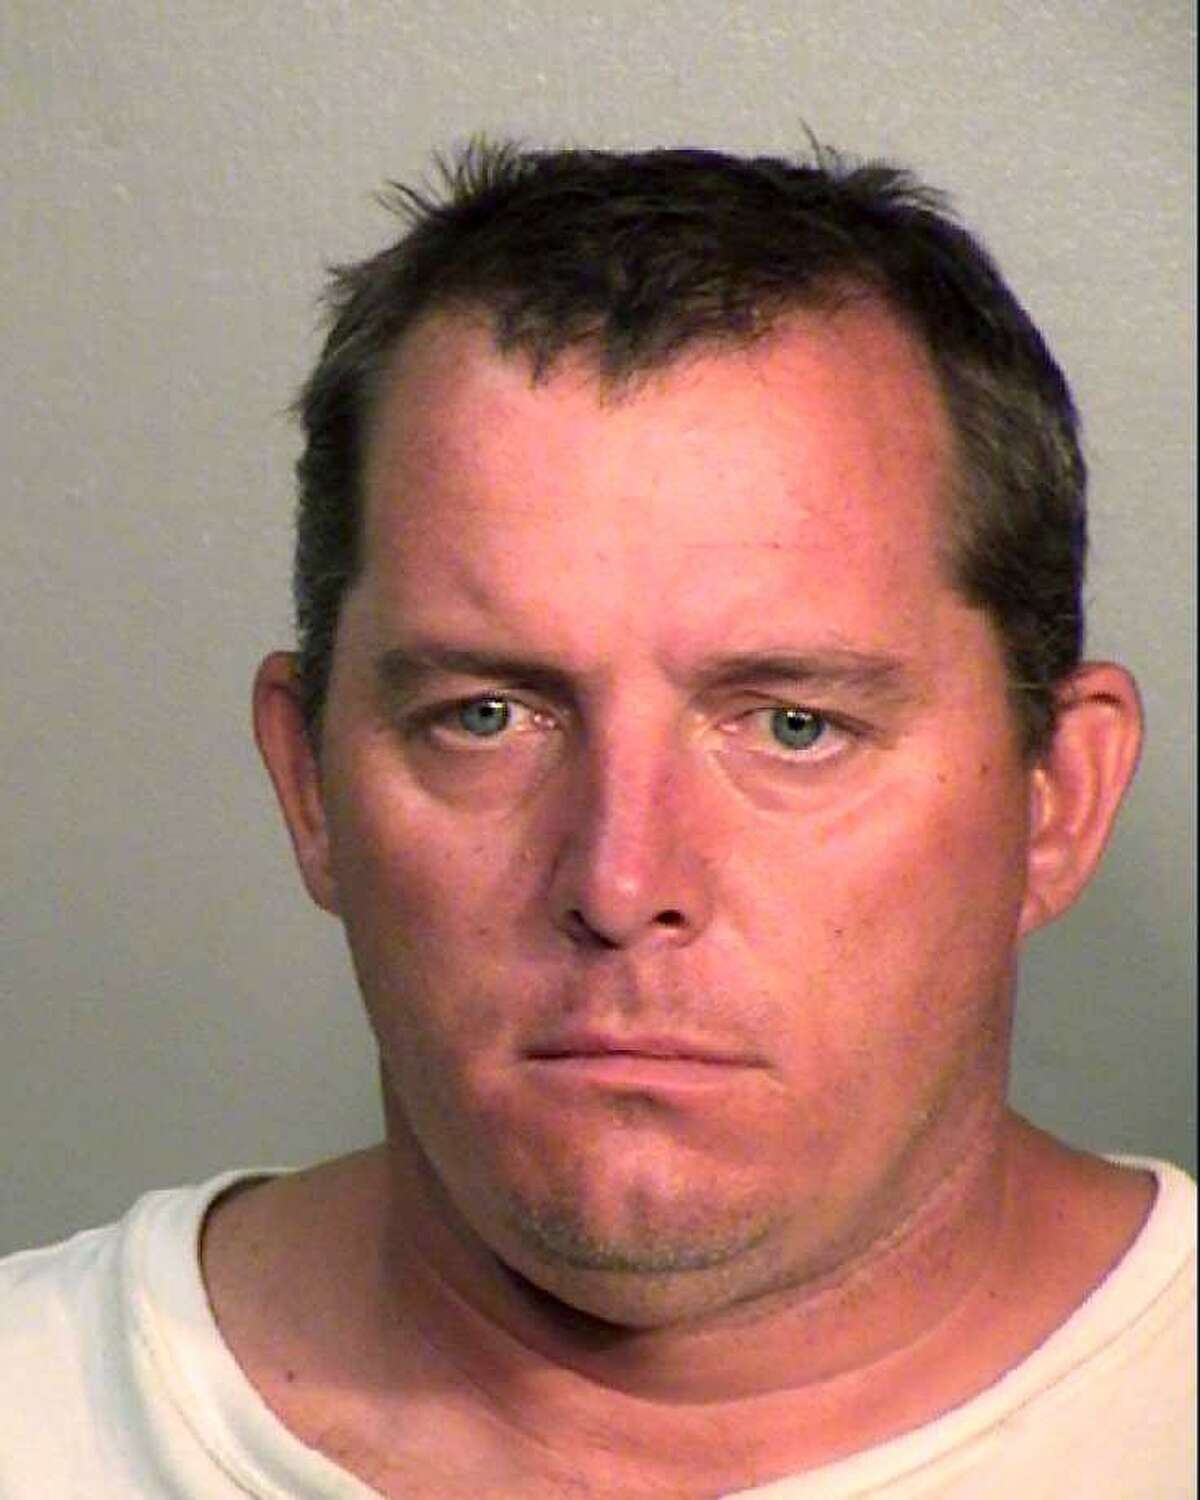 Barry Uhr, a paramedic with the San Antonio Fire Department, was arrested for a second time on charges of domestic violence.